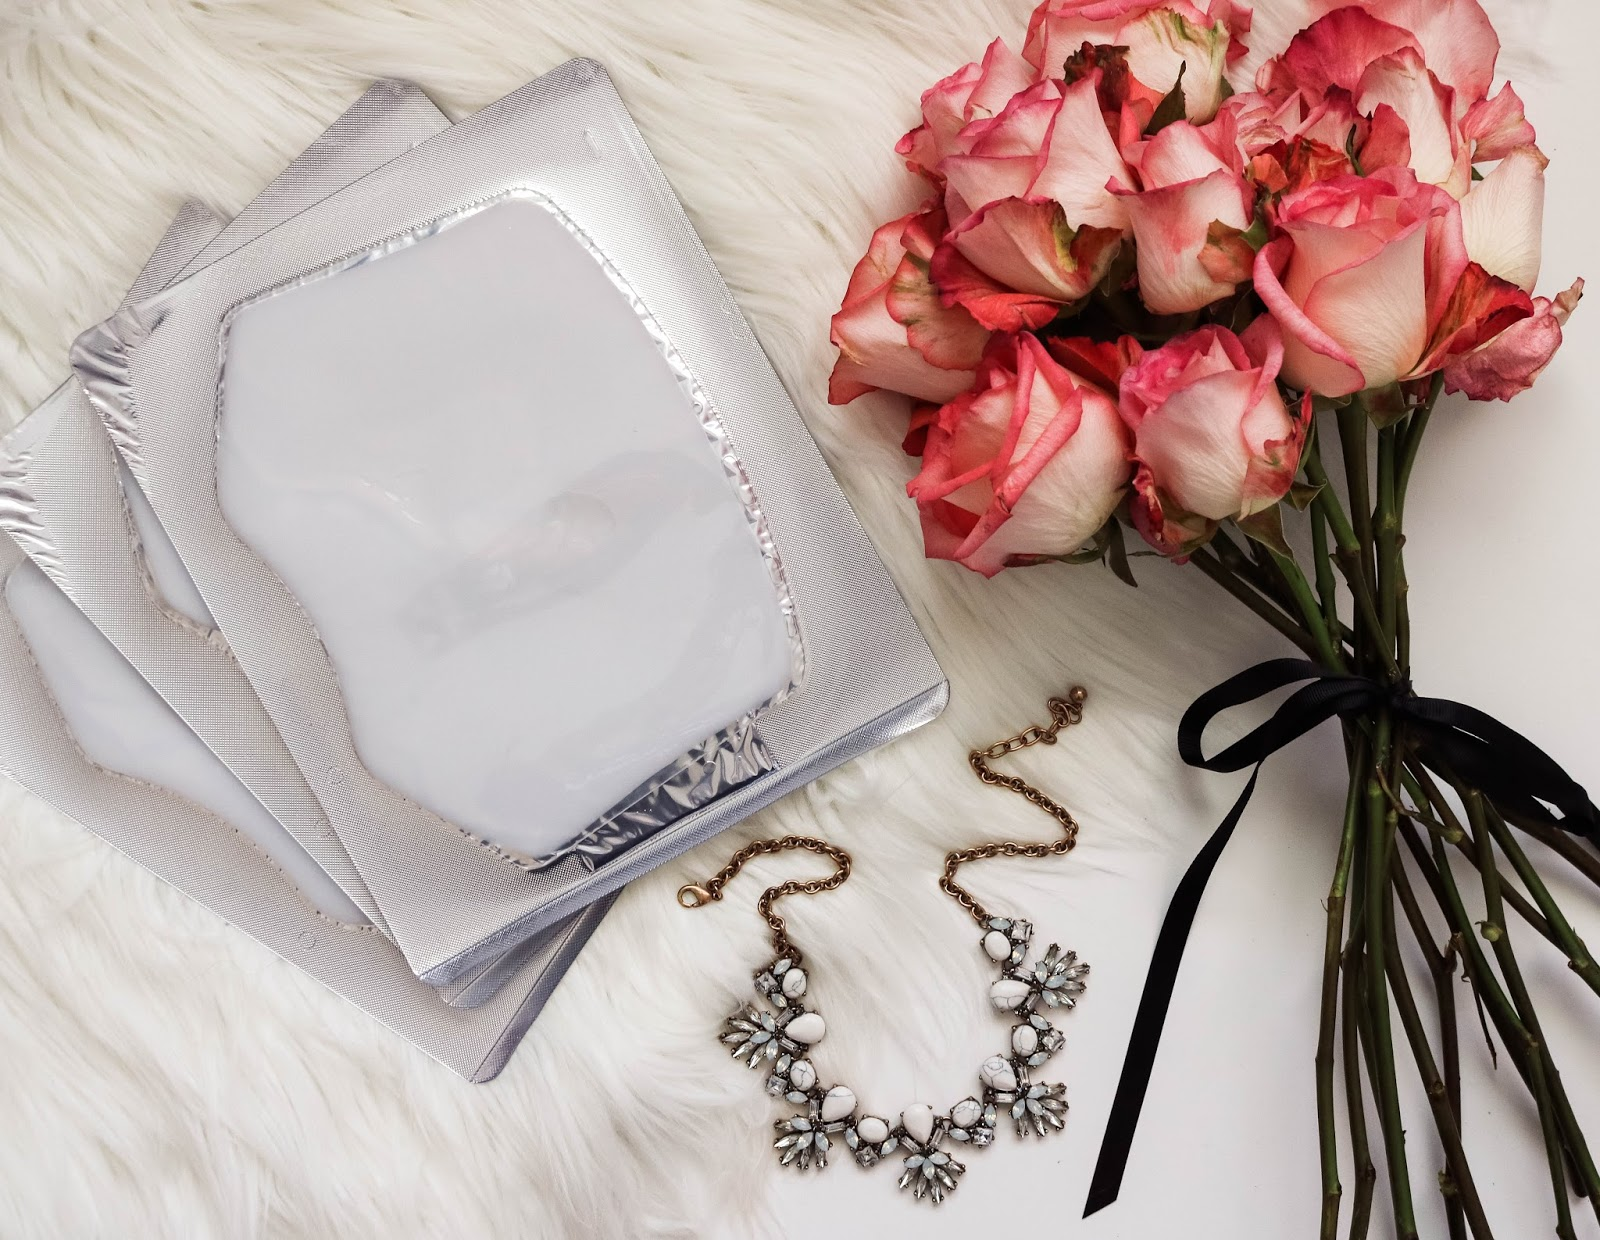 Venofye Review: Queen Bee Collection by popular California style blogger Lizzie in Lace